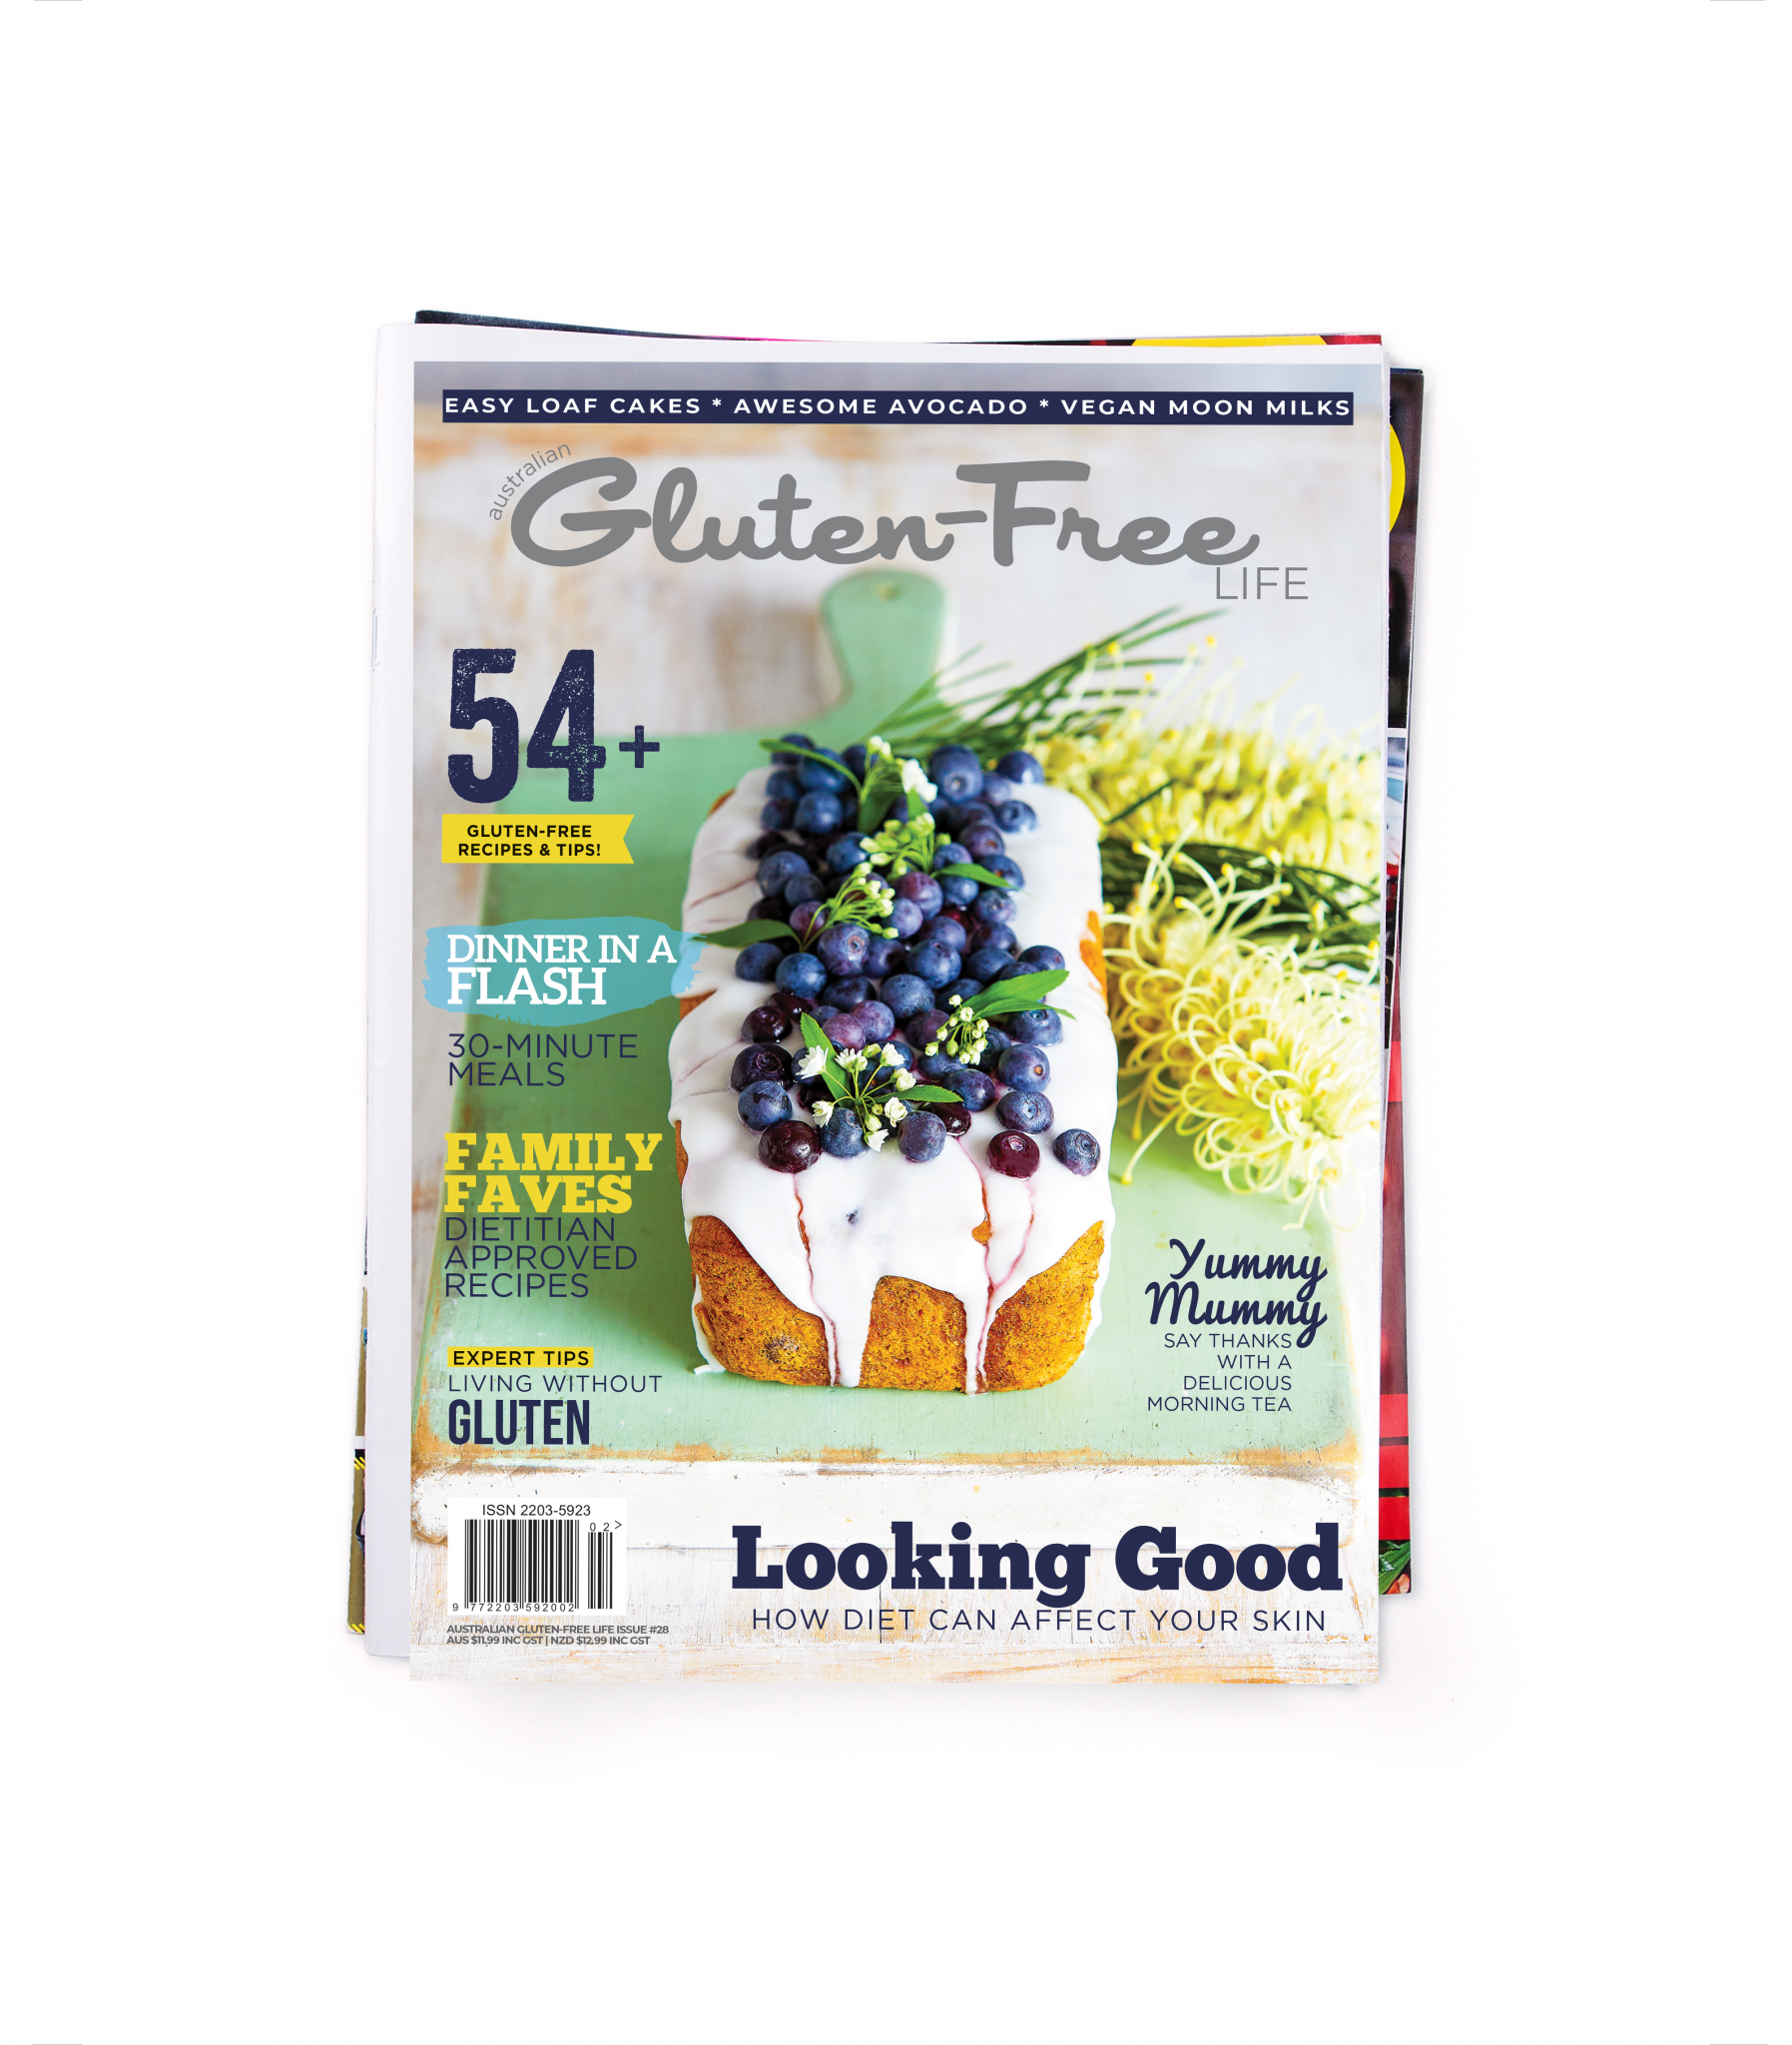 Gluten-Free Magazine with blueberry banana cake sitting on a green board with yellow flowers.